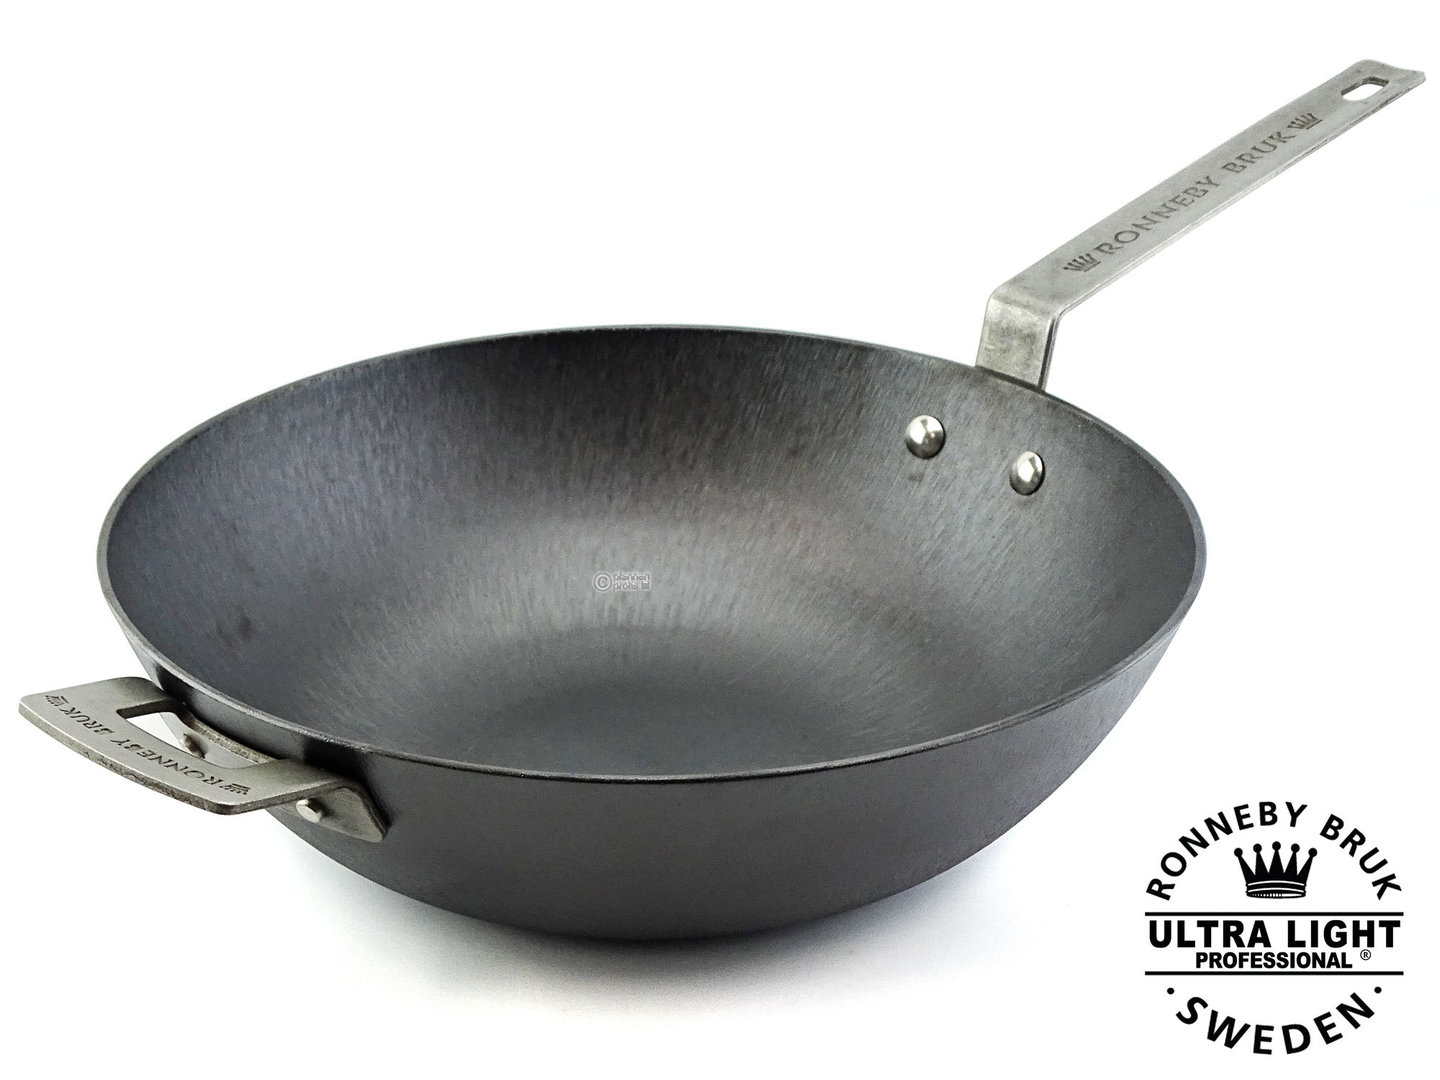 RONNEBY BRUK pre-seasoned cast iron wok pan ULTRA LIGHT PROFESSIONAL 32 cm